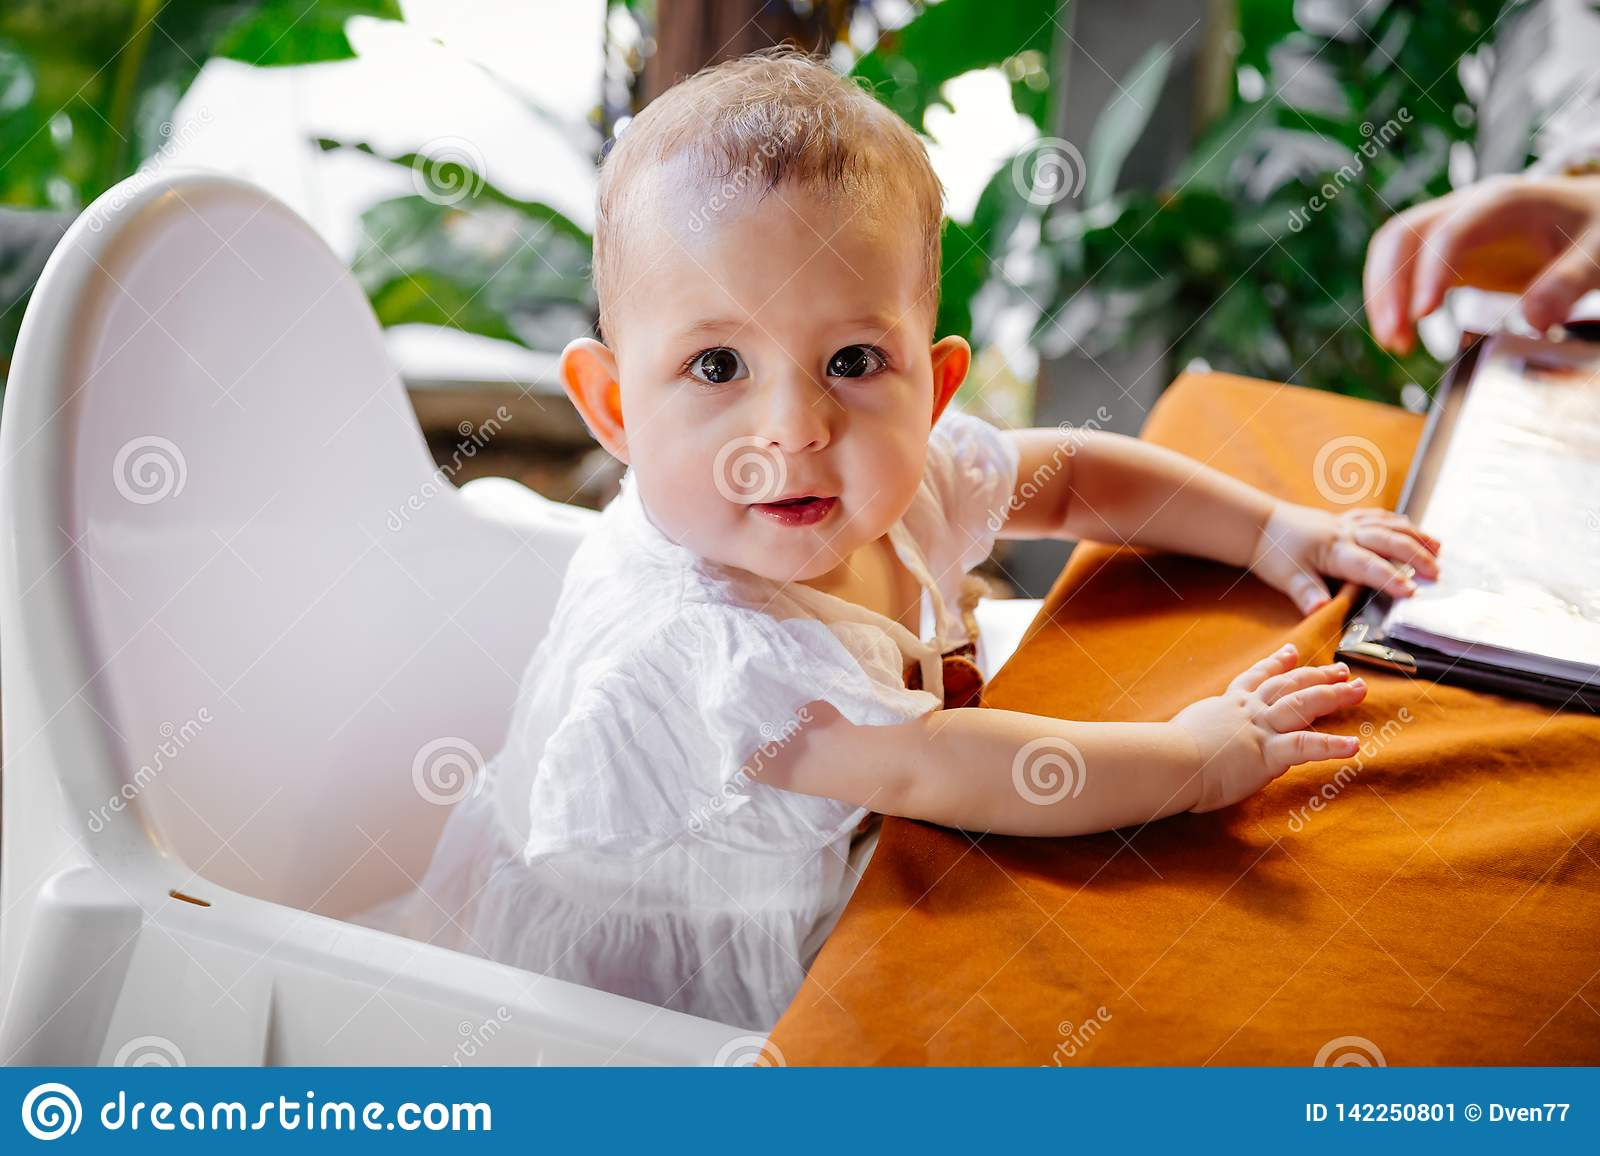 Infant Learning Chair Infant Girl Is Sitting On A Baby High Chair In A Street Cafe